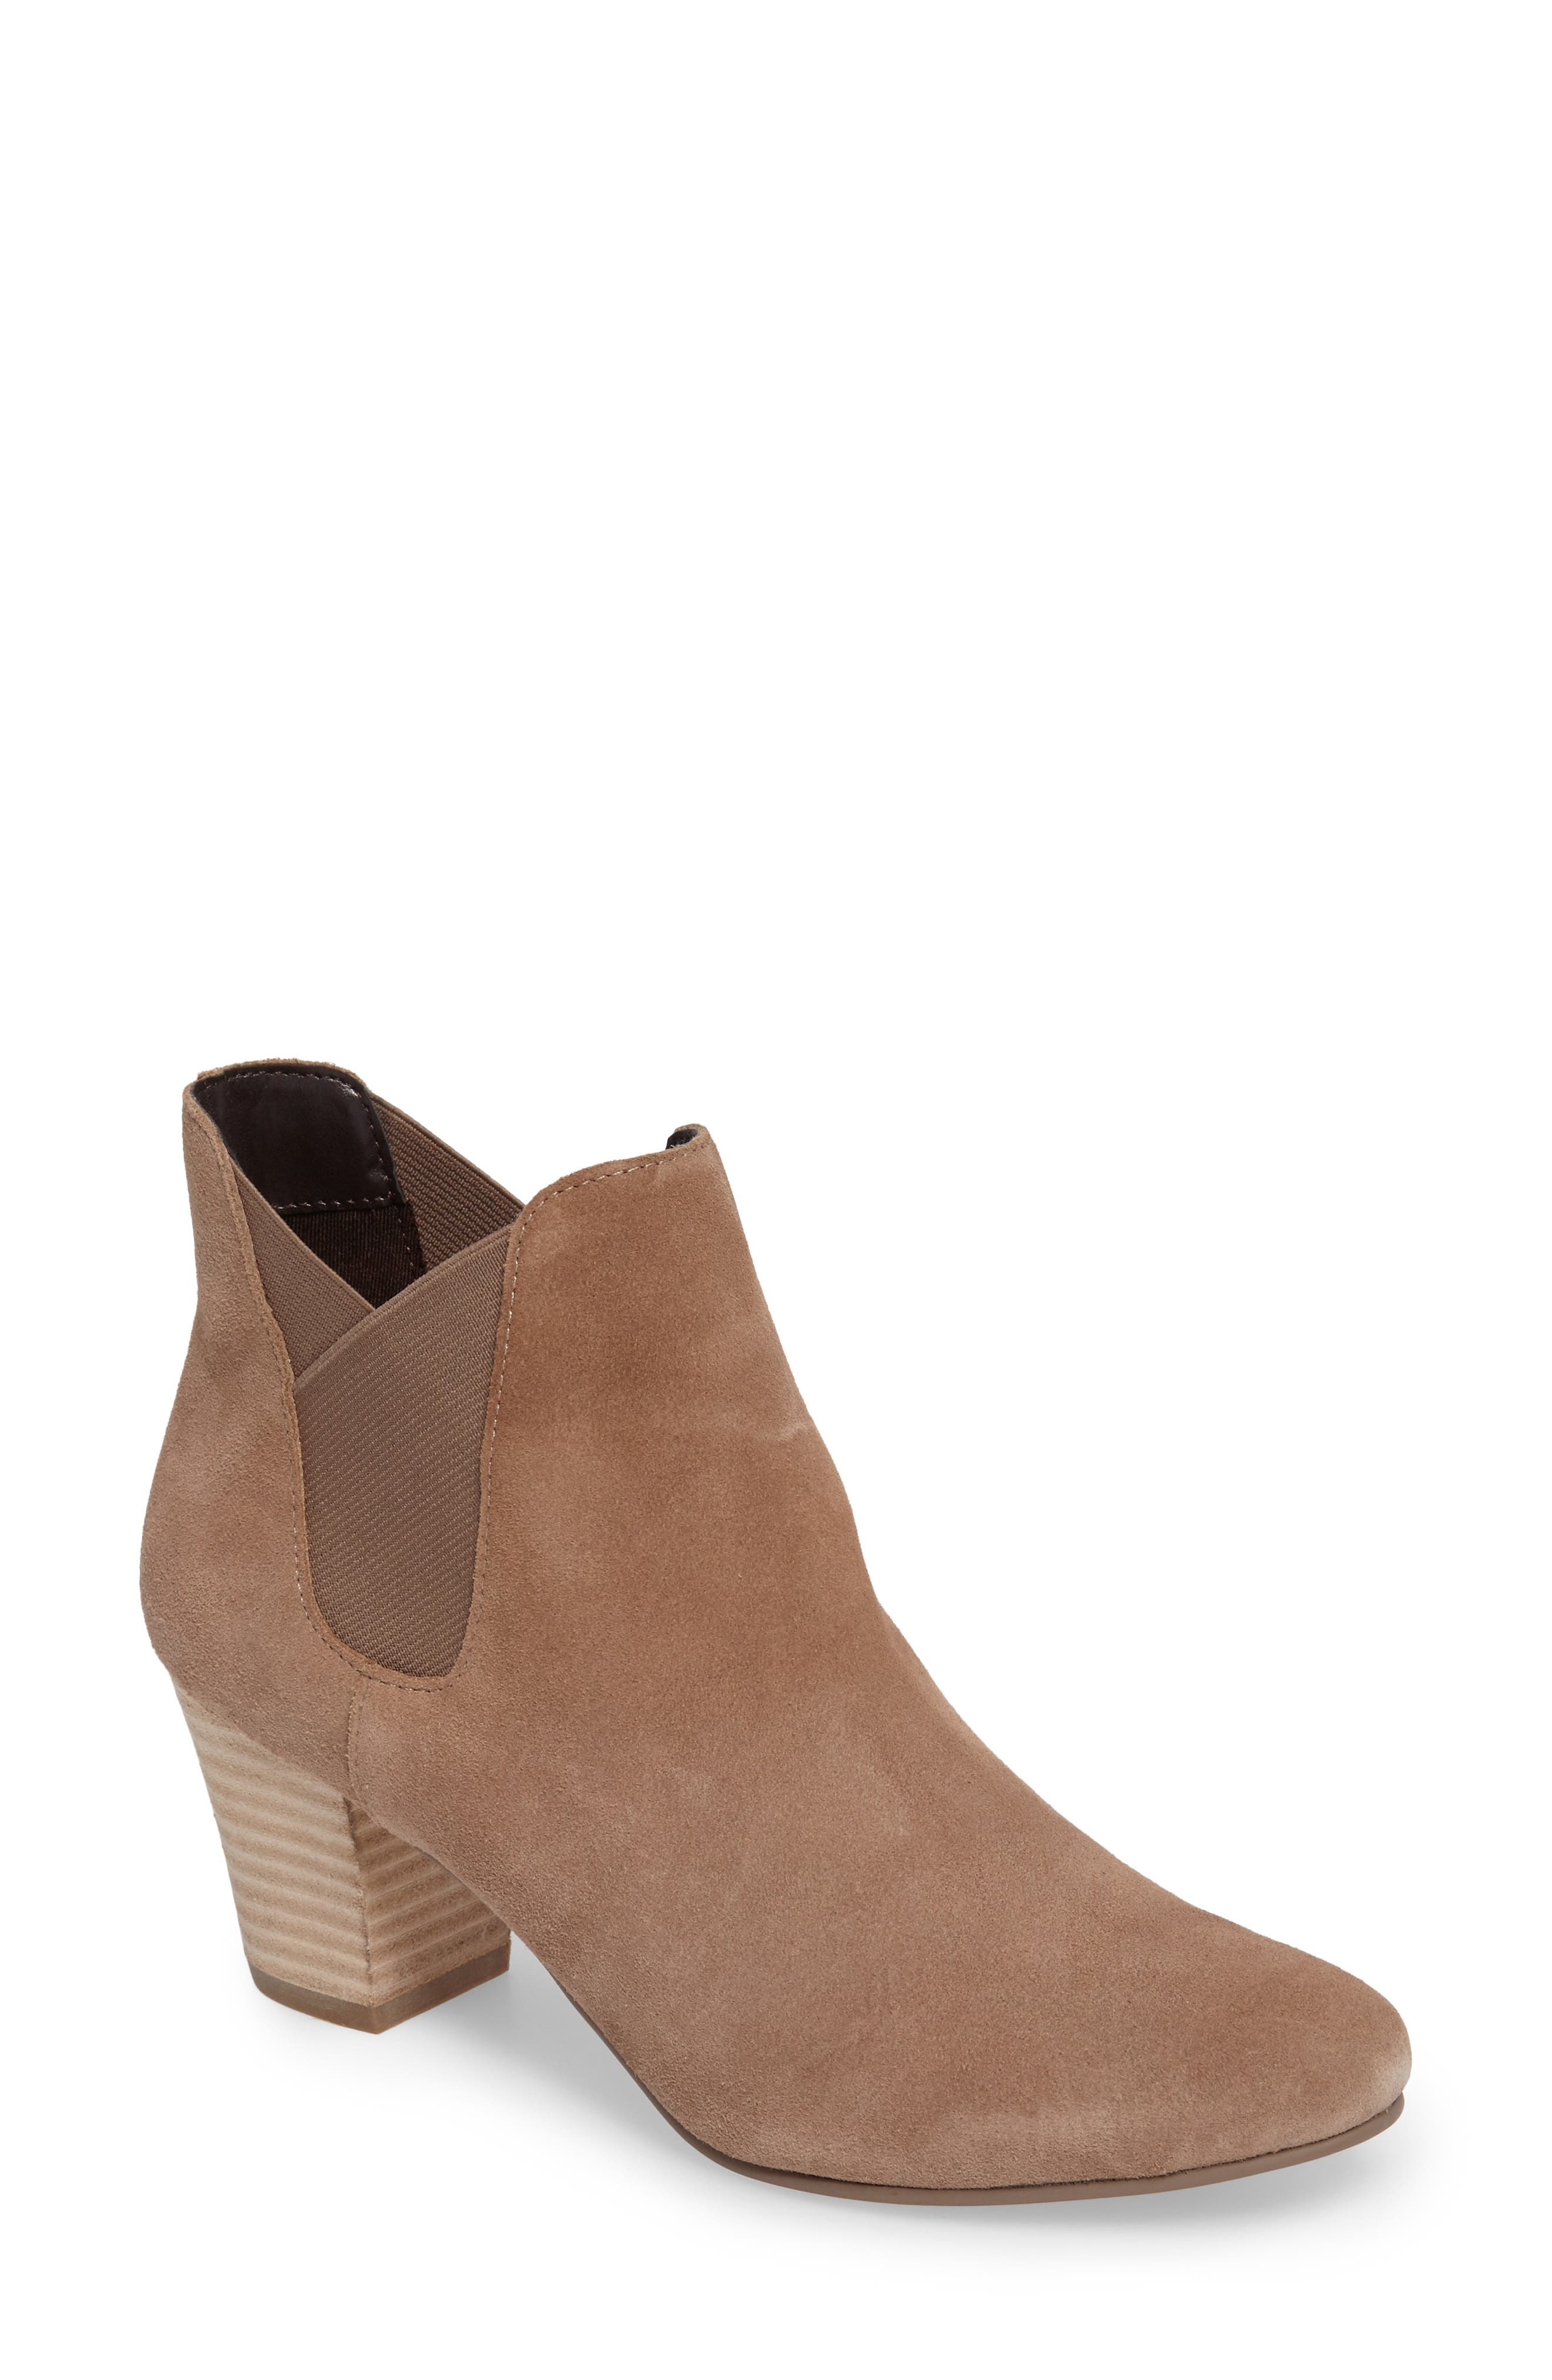 Main Image - Sole Society Acacia Bootie (Women)